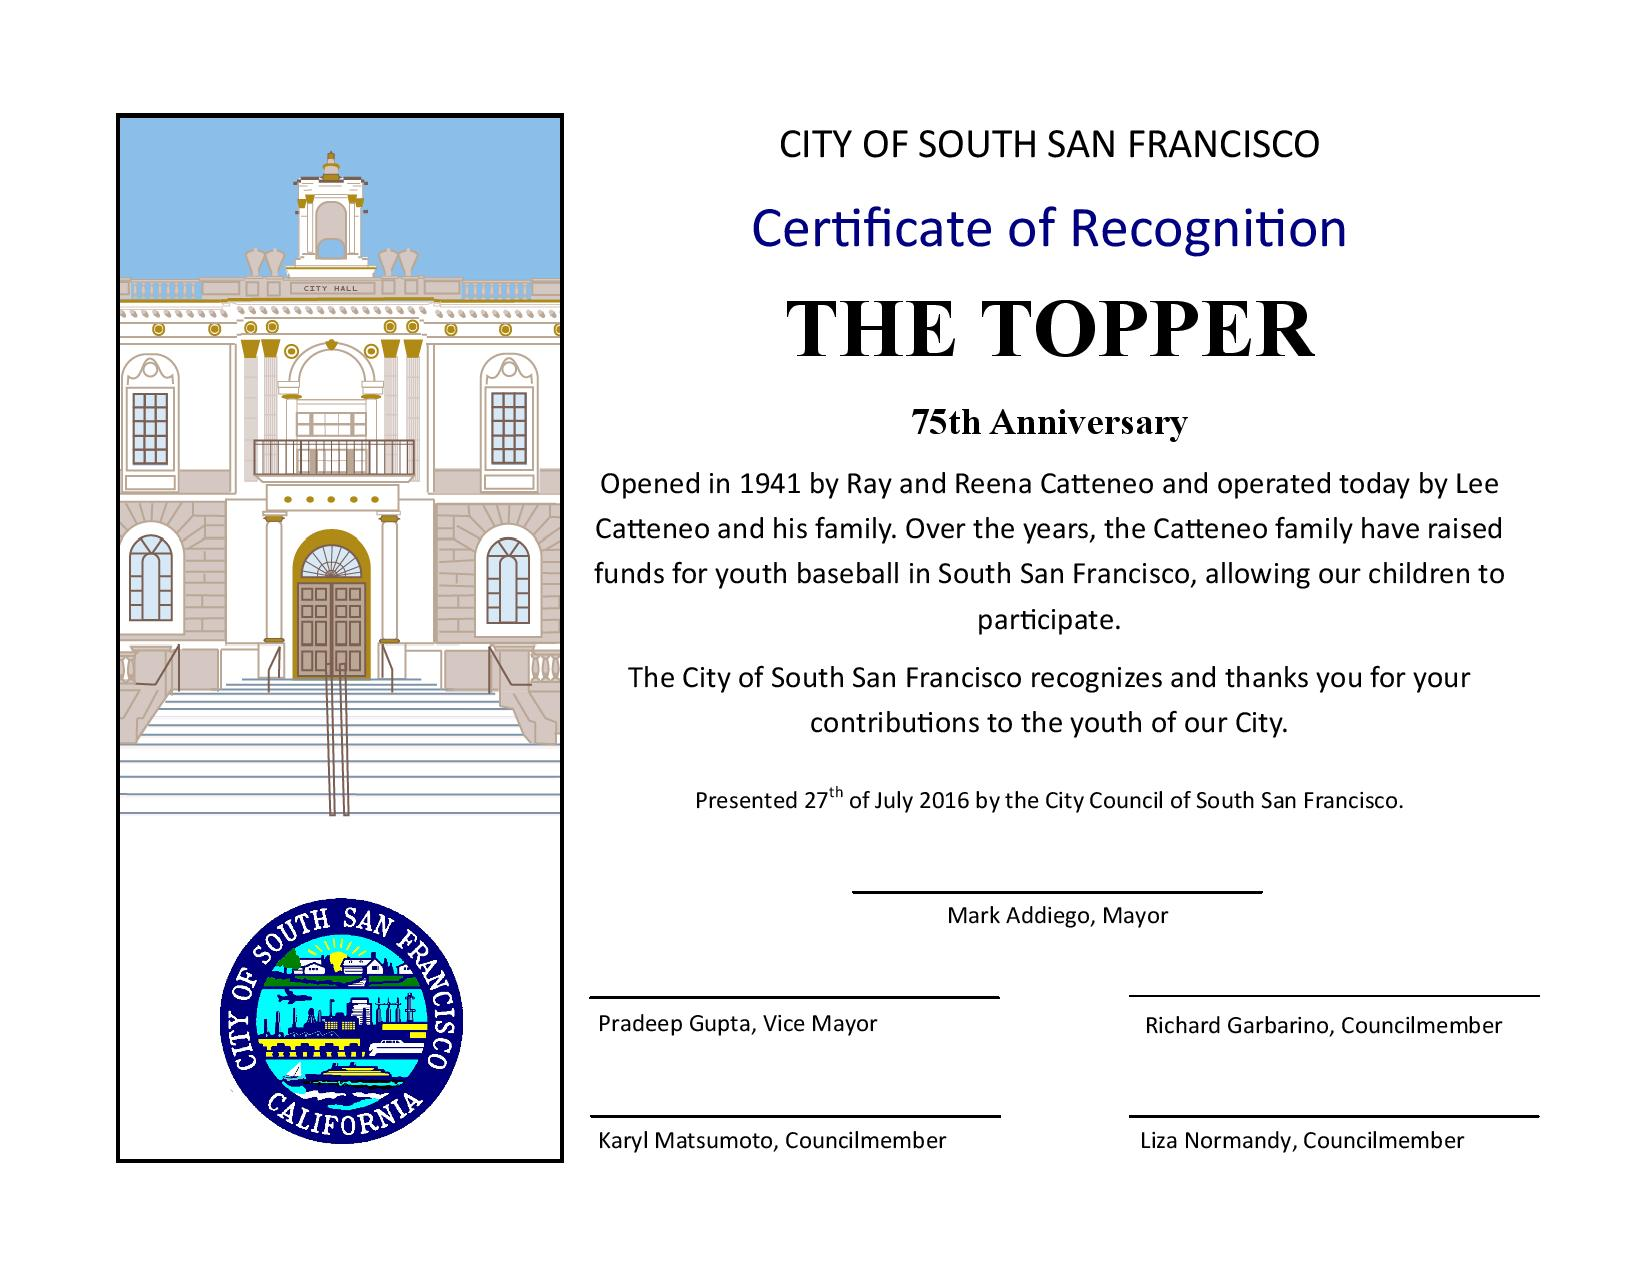 The TOPPER is located at 240 Grand Avenue